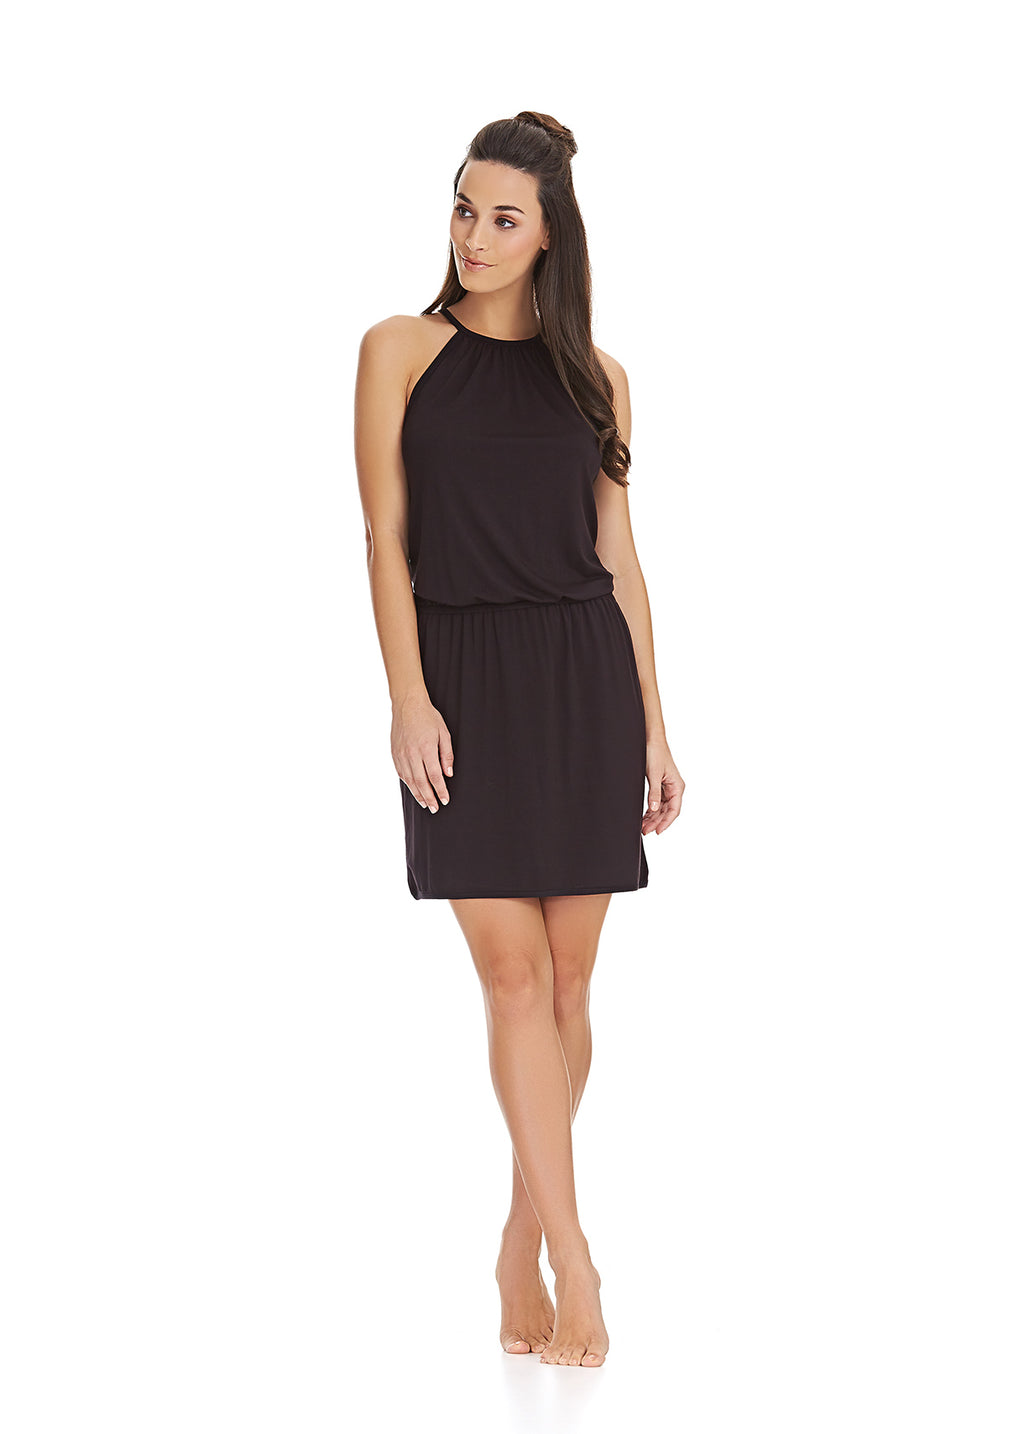 Freya Womens Coastline Halterneck Beach Dress